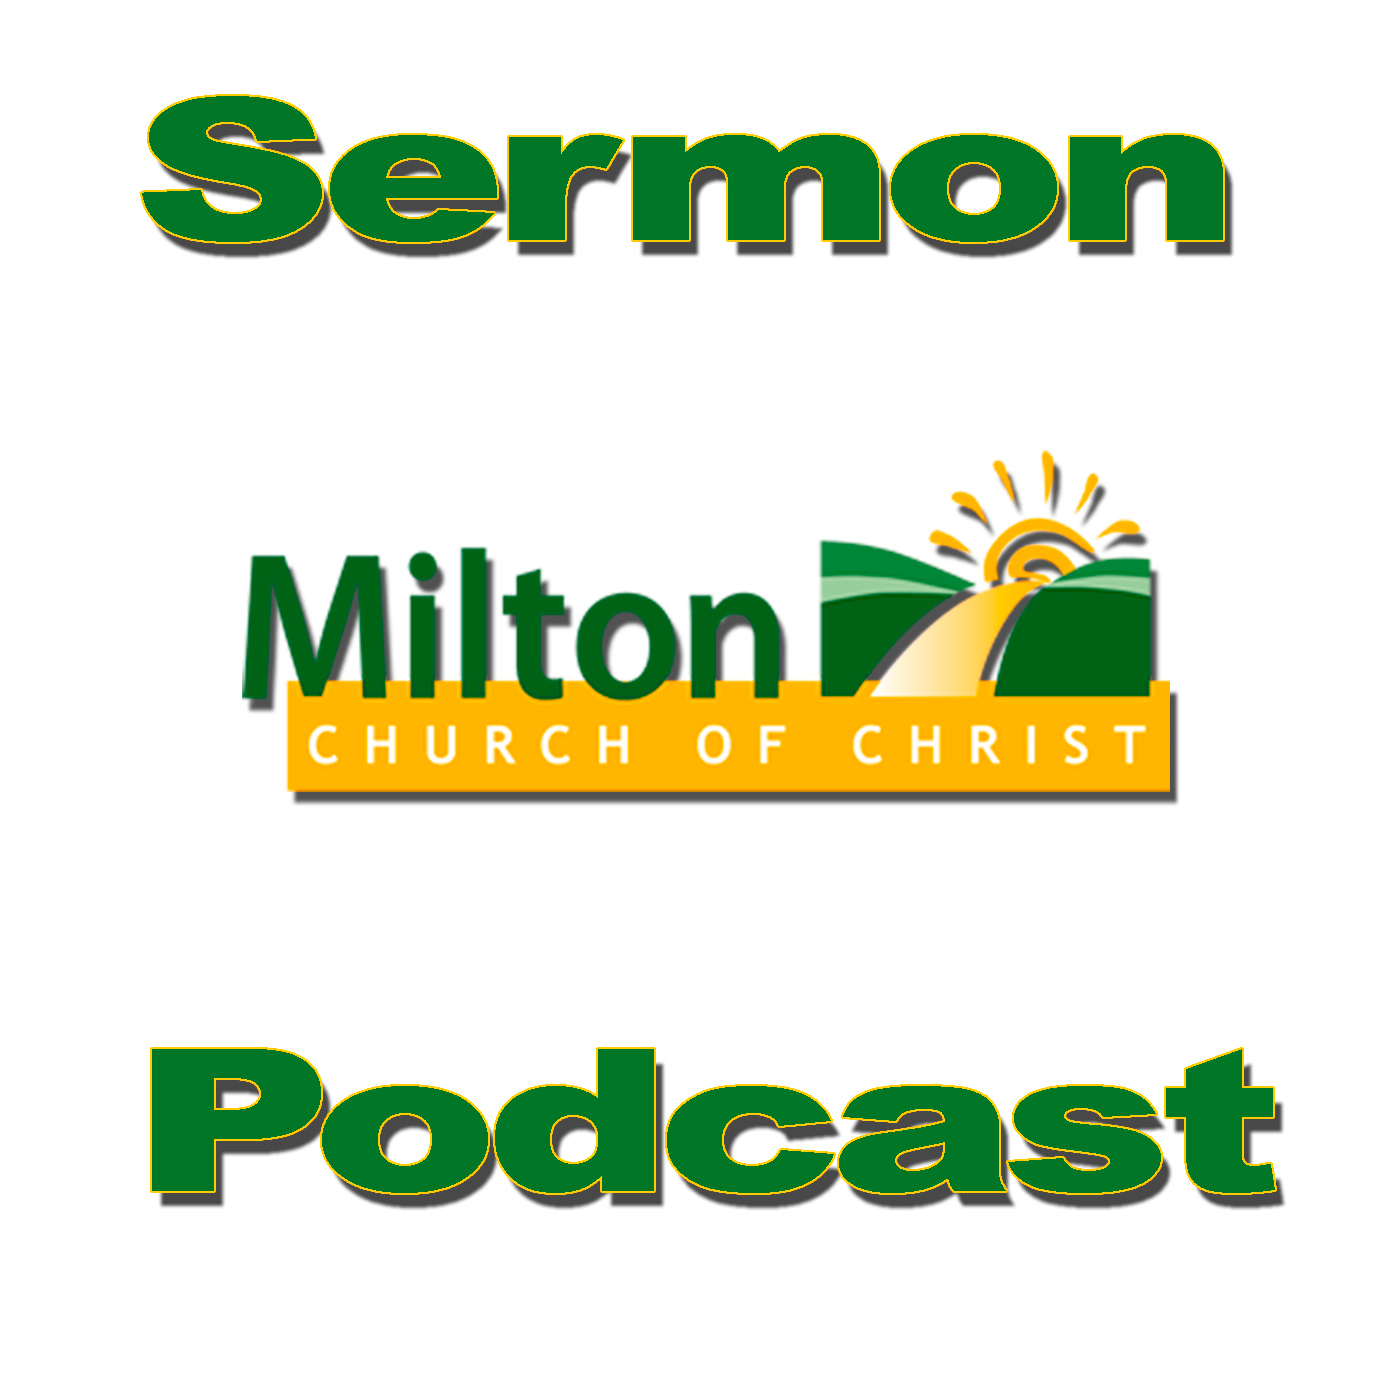 All Sermons – Milton Church of Christ